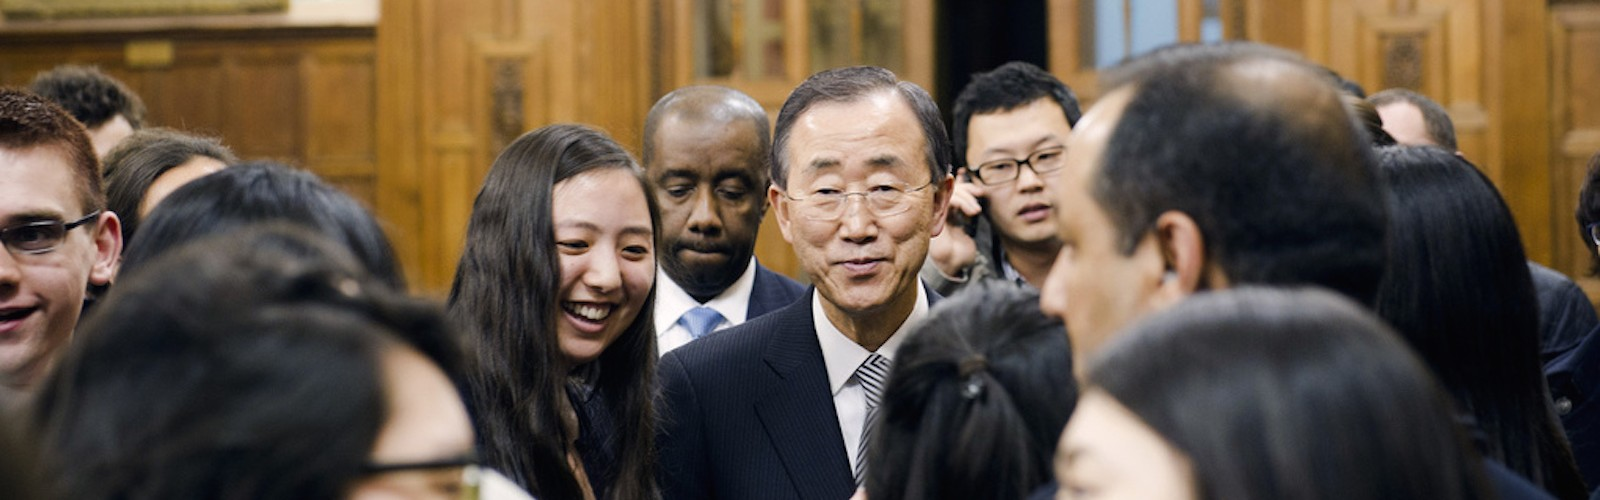 U.N. Secretary General Ban Ki-Moon. (Photo courtesy of U.N. Flickr)